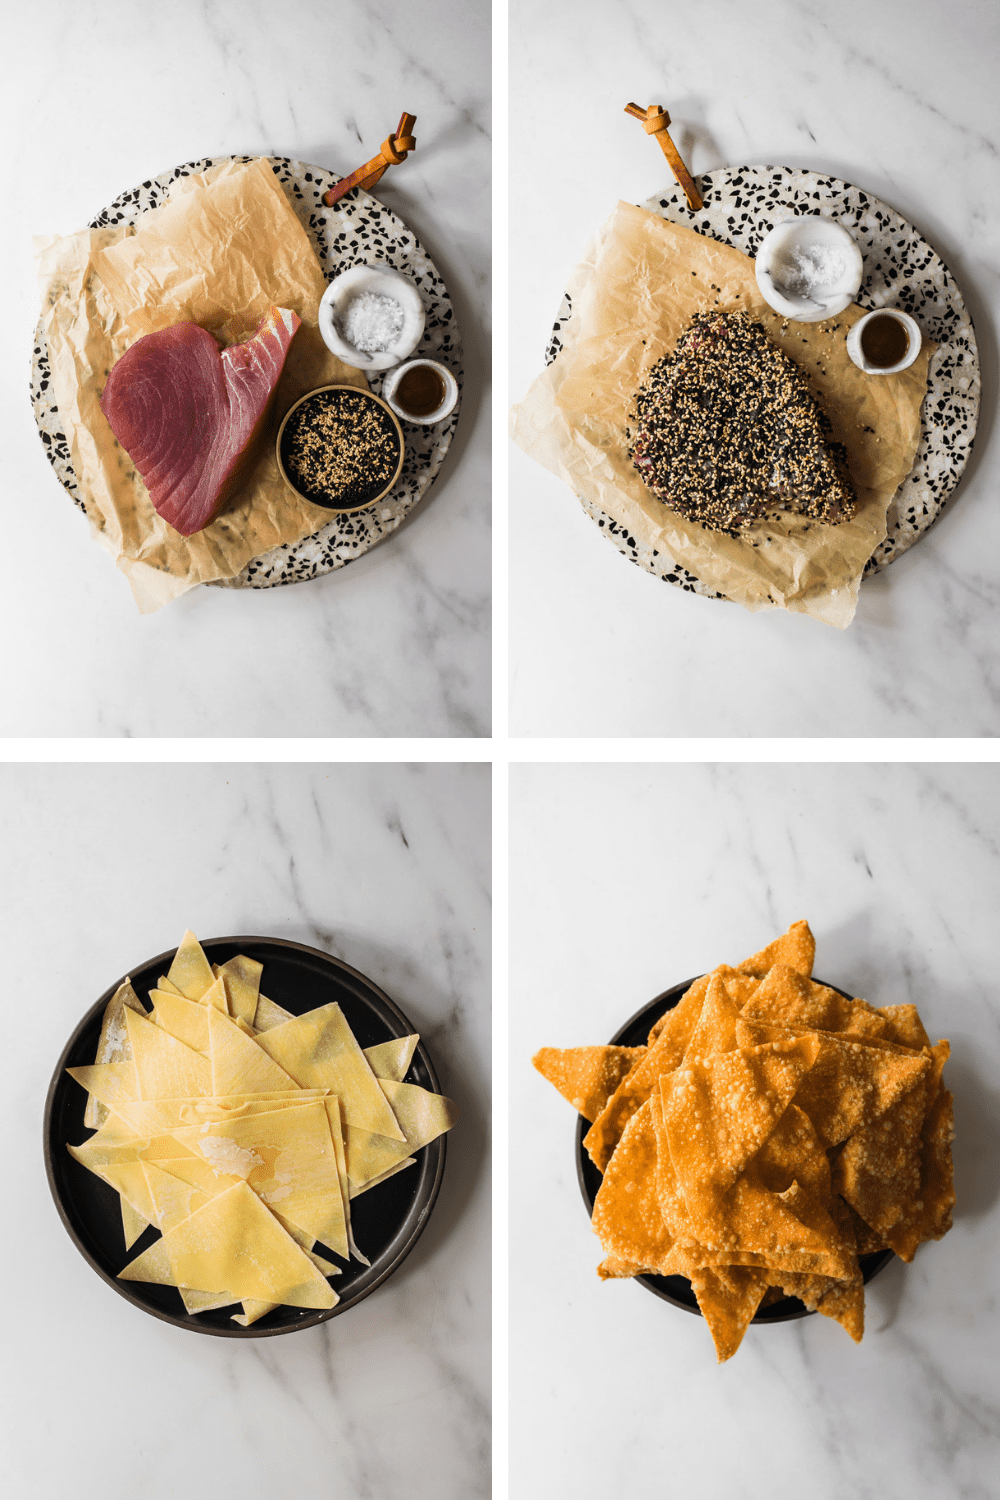 4 photos of preparing the sesame covered tuna and fried wontons